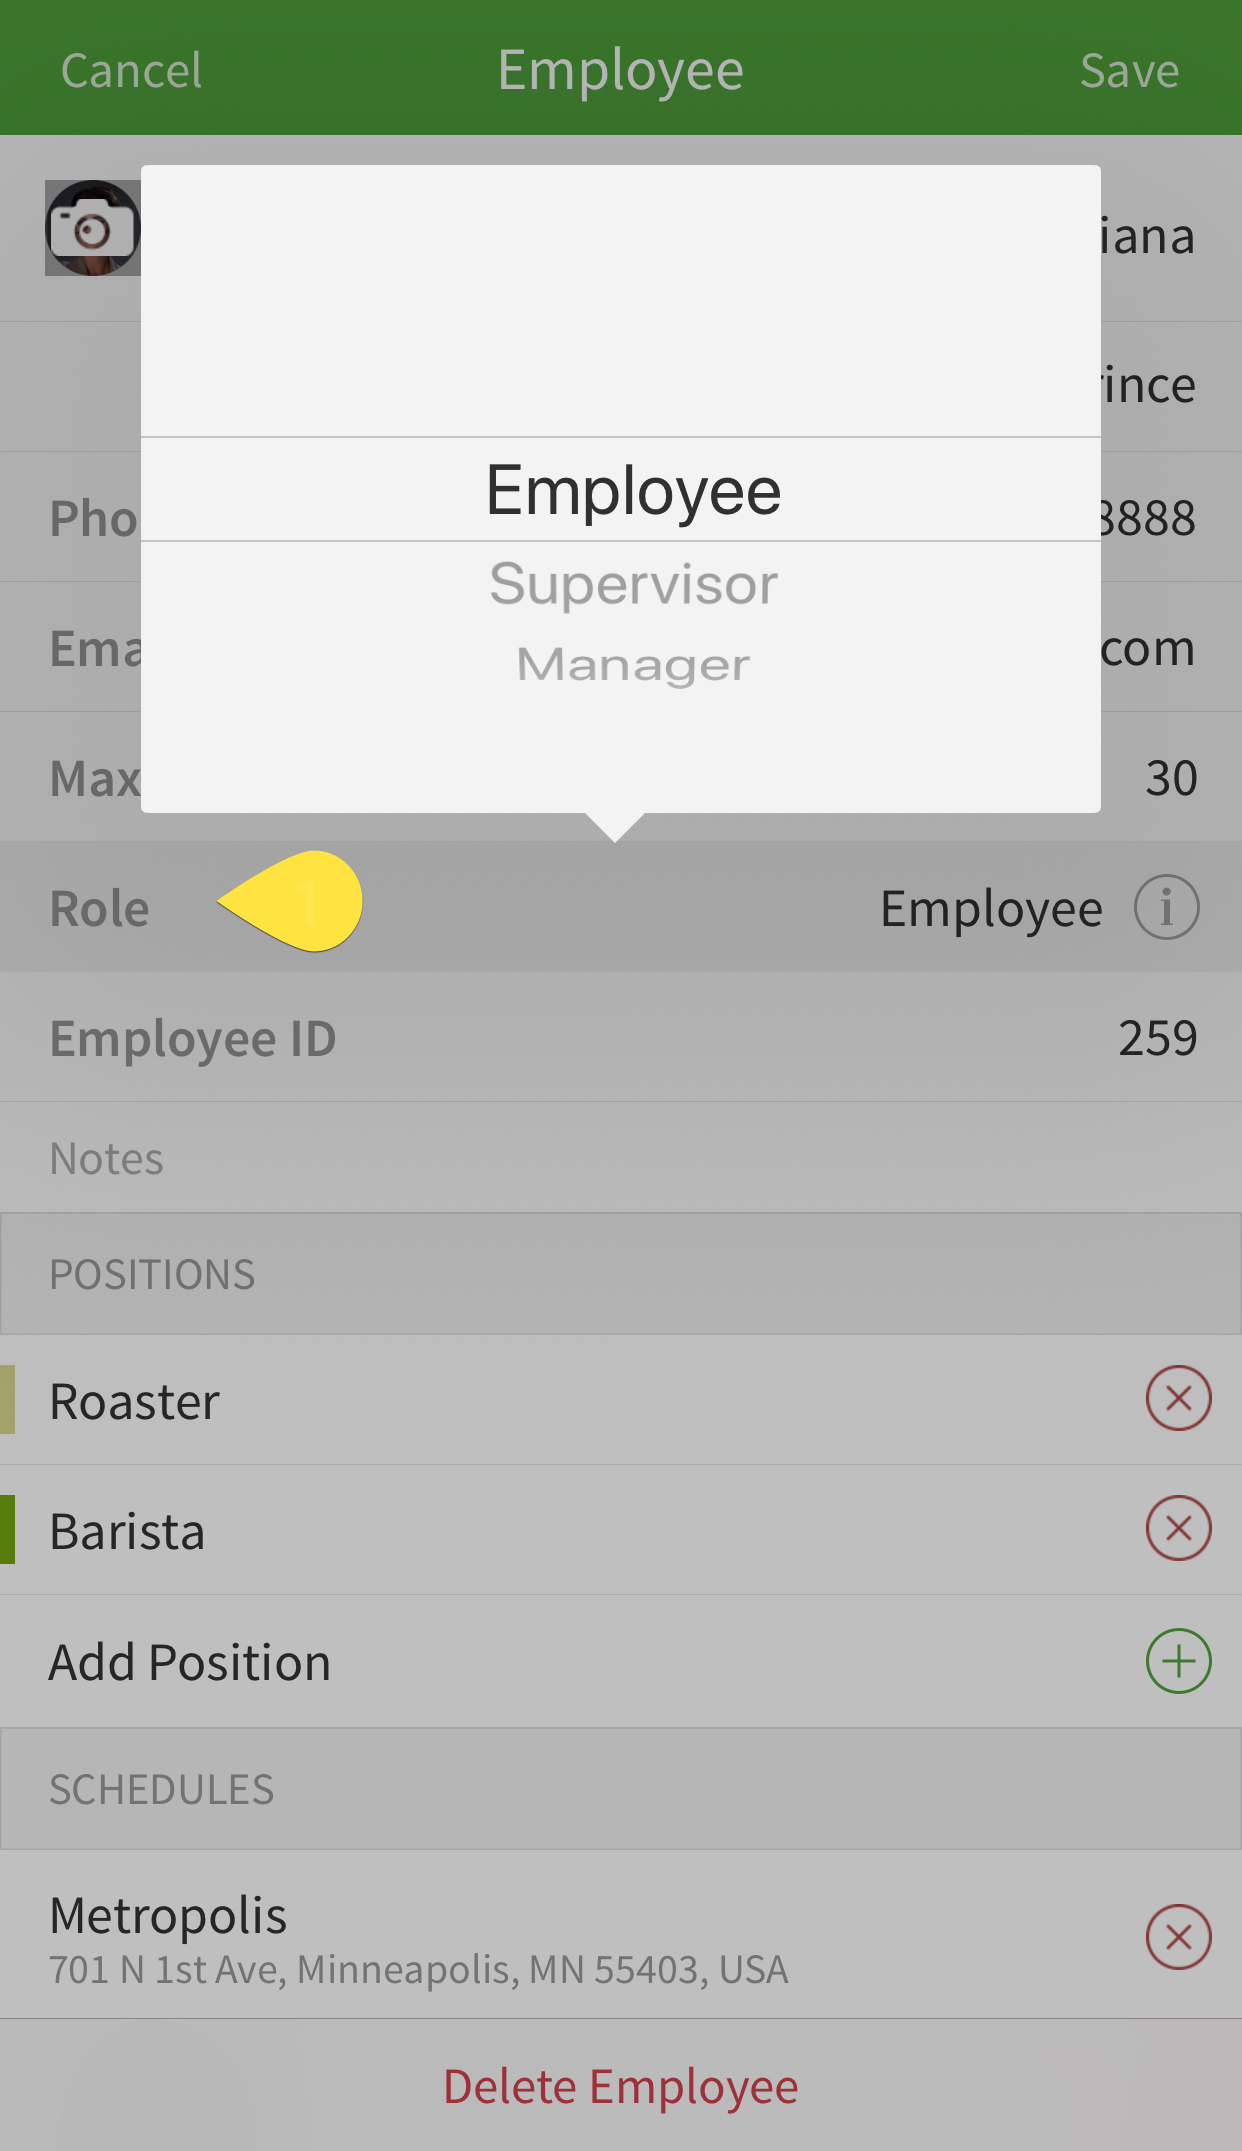 Change employee role